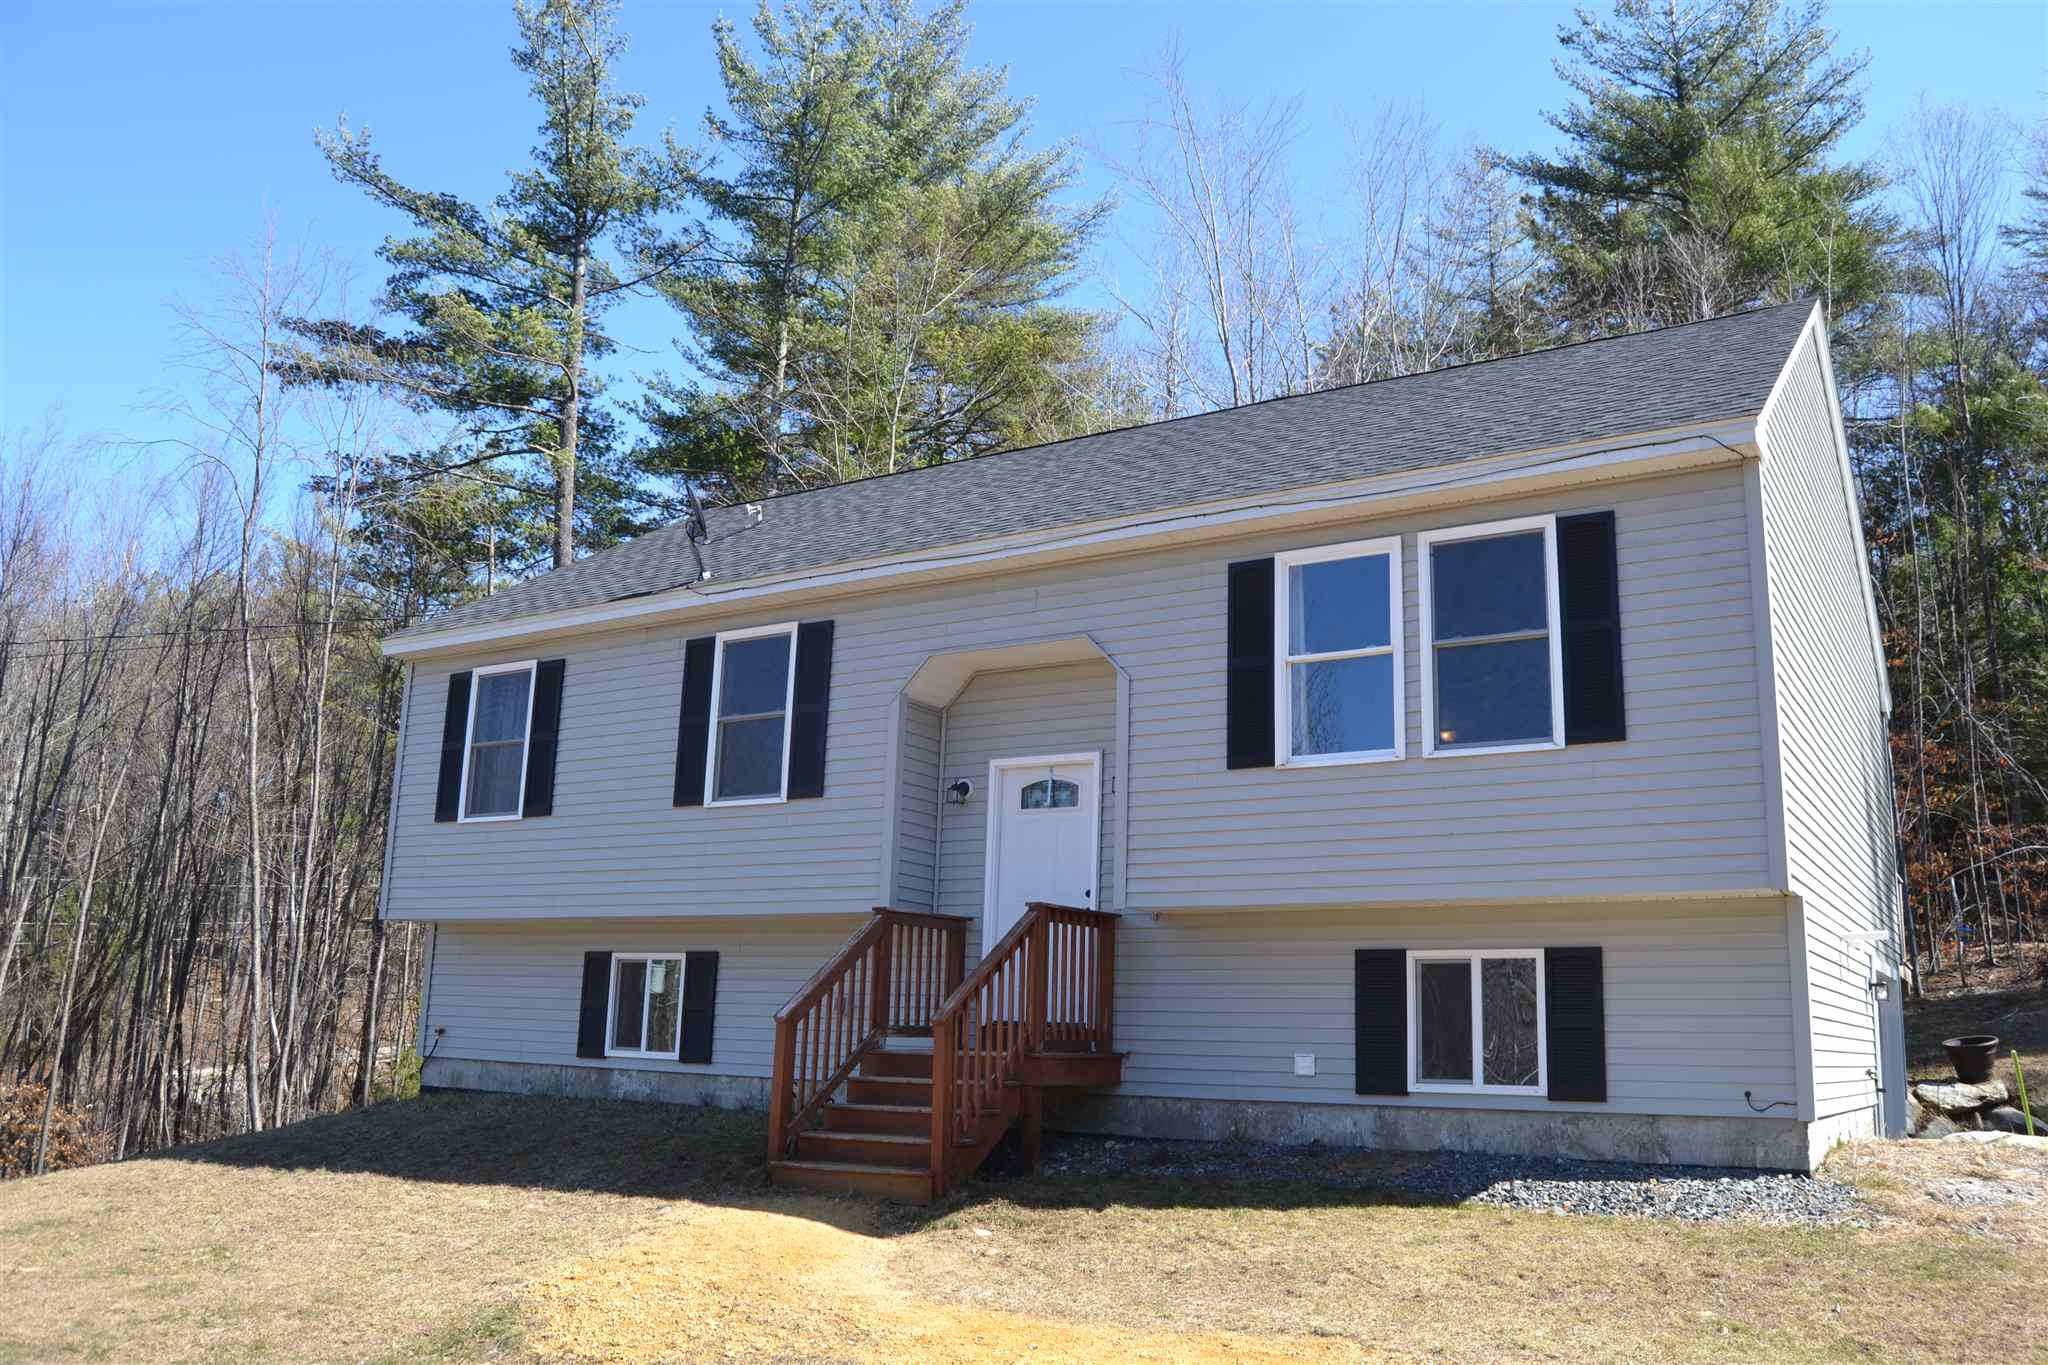 Photo of 14 Donald Avenue Raymond NH 03077